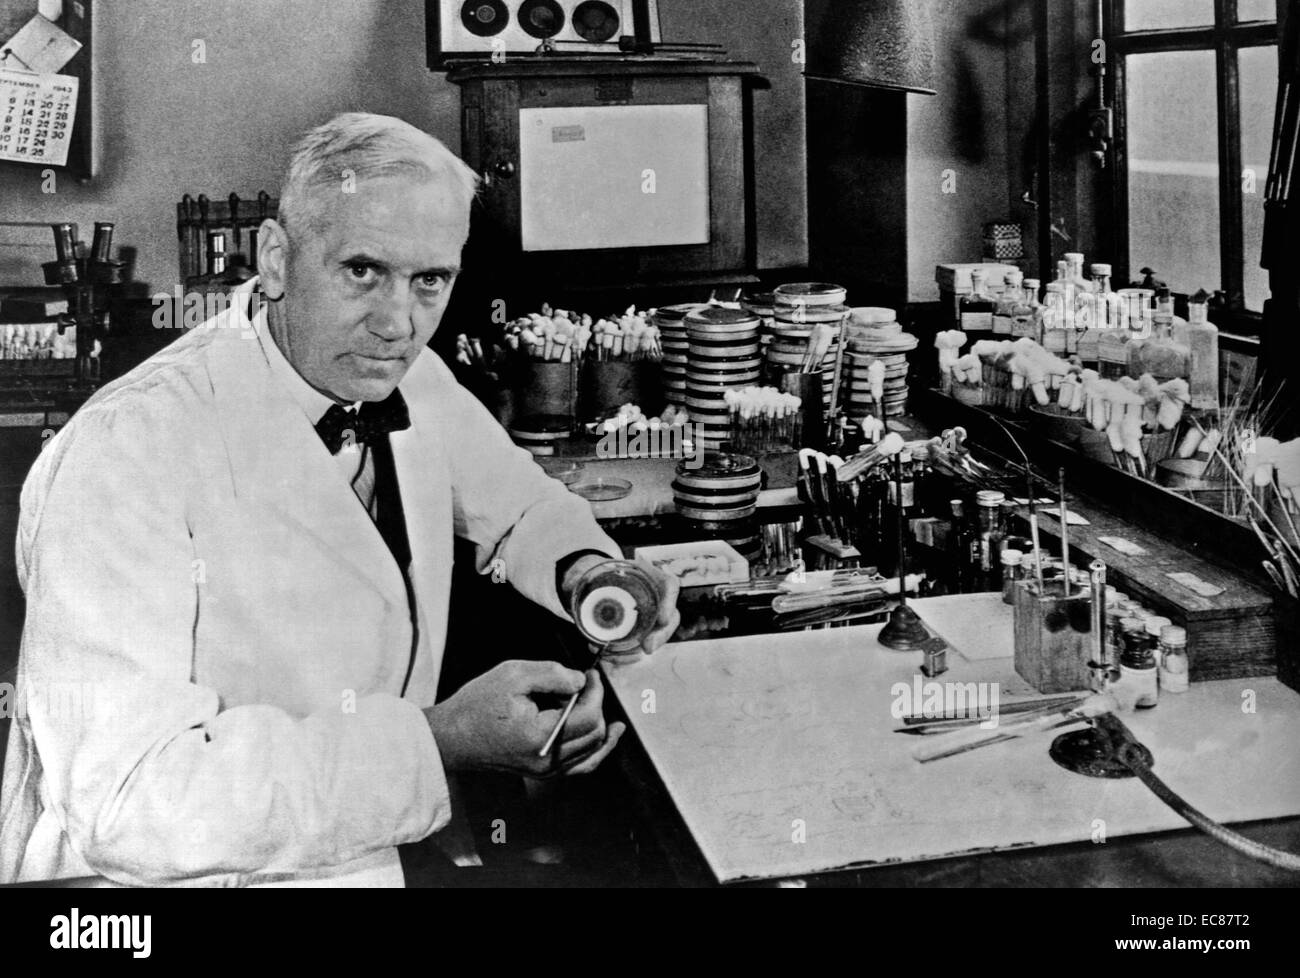 Sir Alexander Fleming, (6 August 1881 – 11 March 1955) was a Scottish biologist - Stock Image